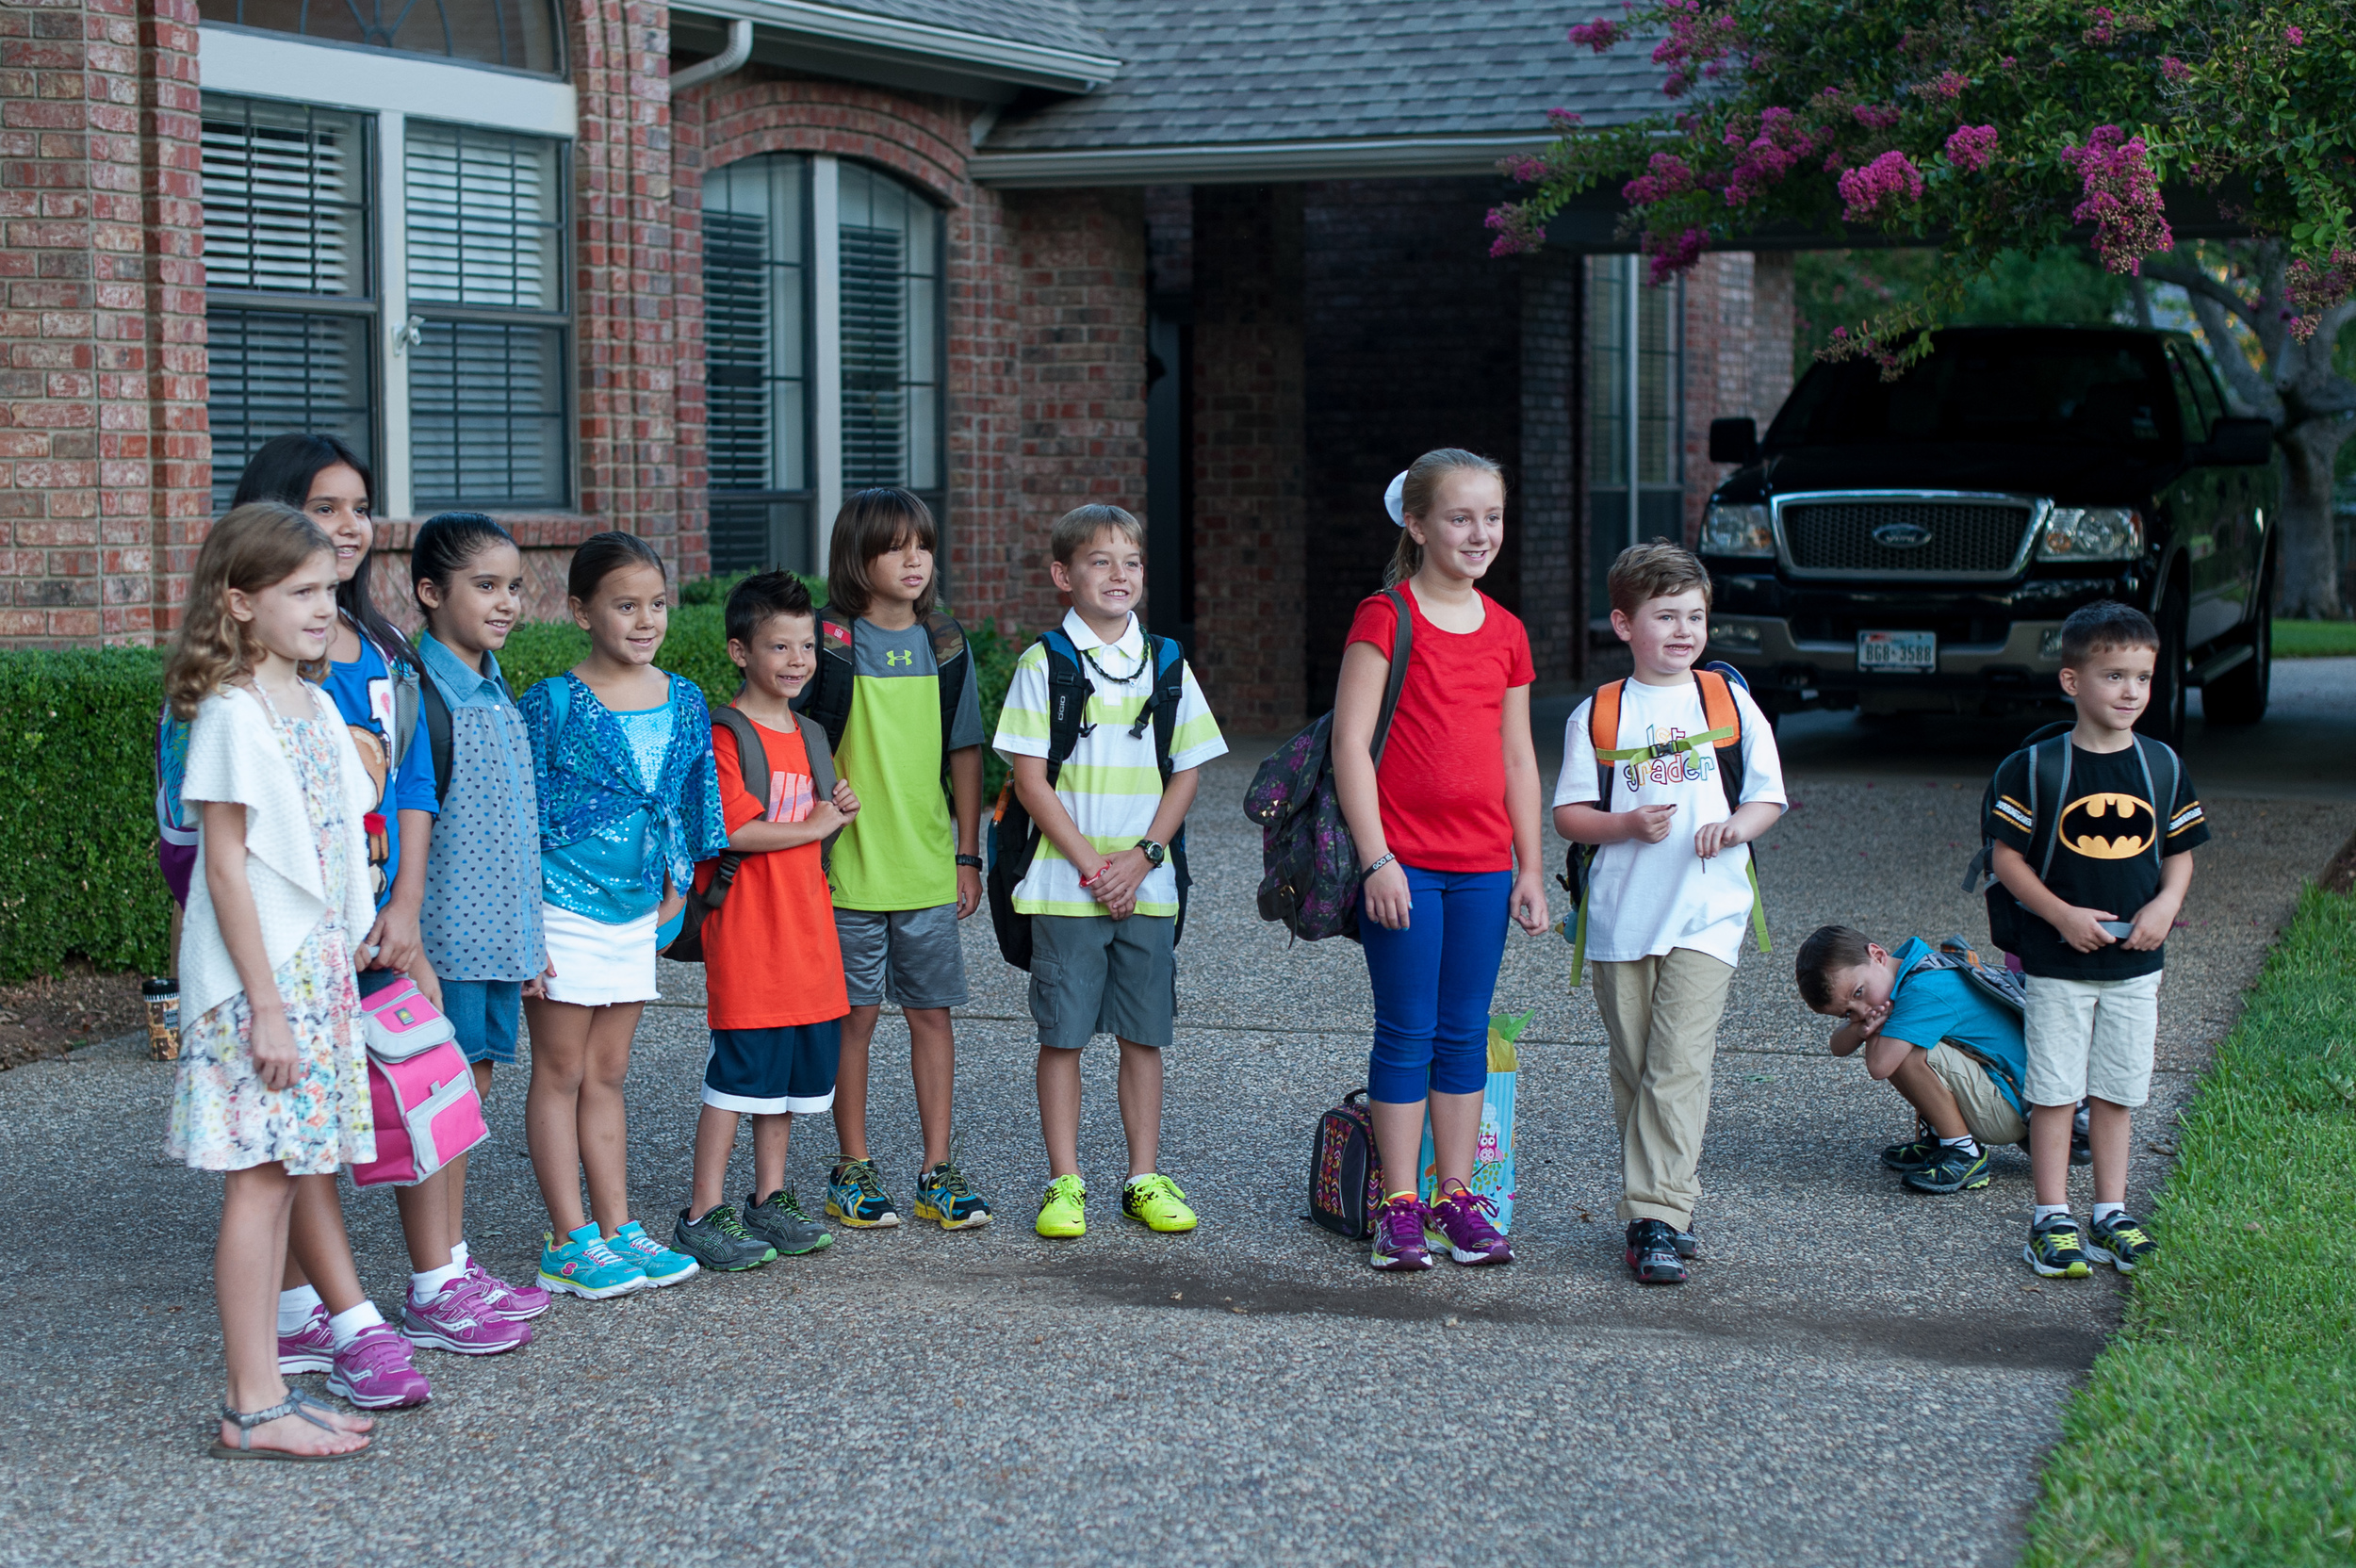 Meeting up with the neighborhood kids to walk to school for the first day.